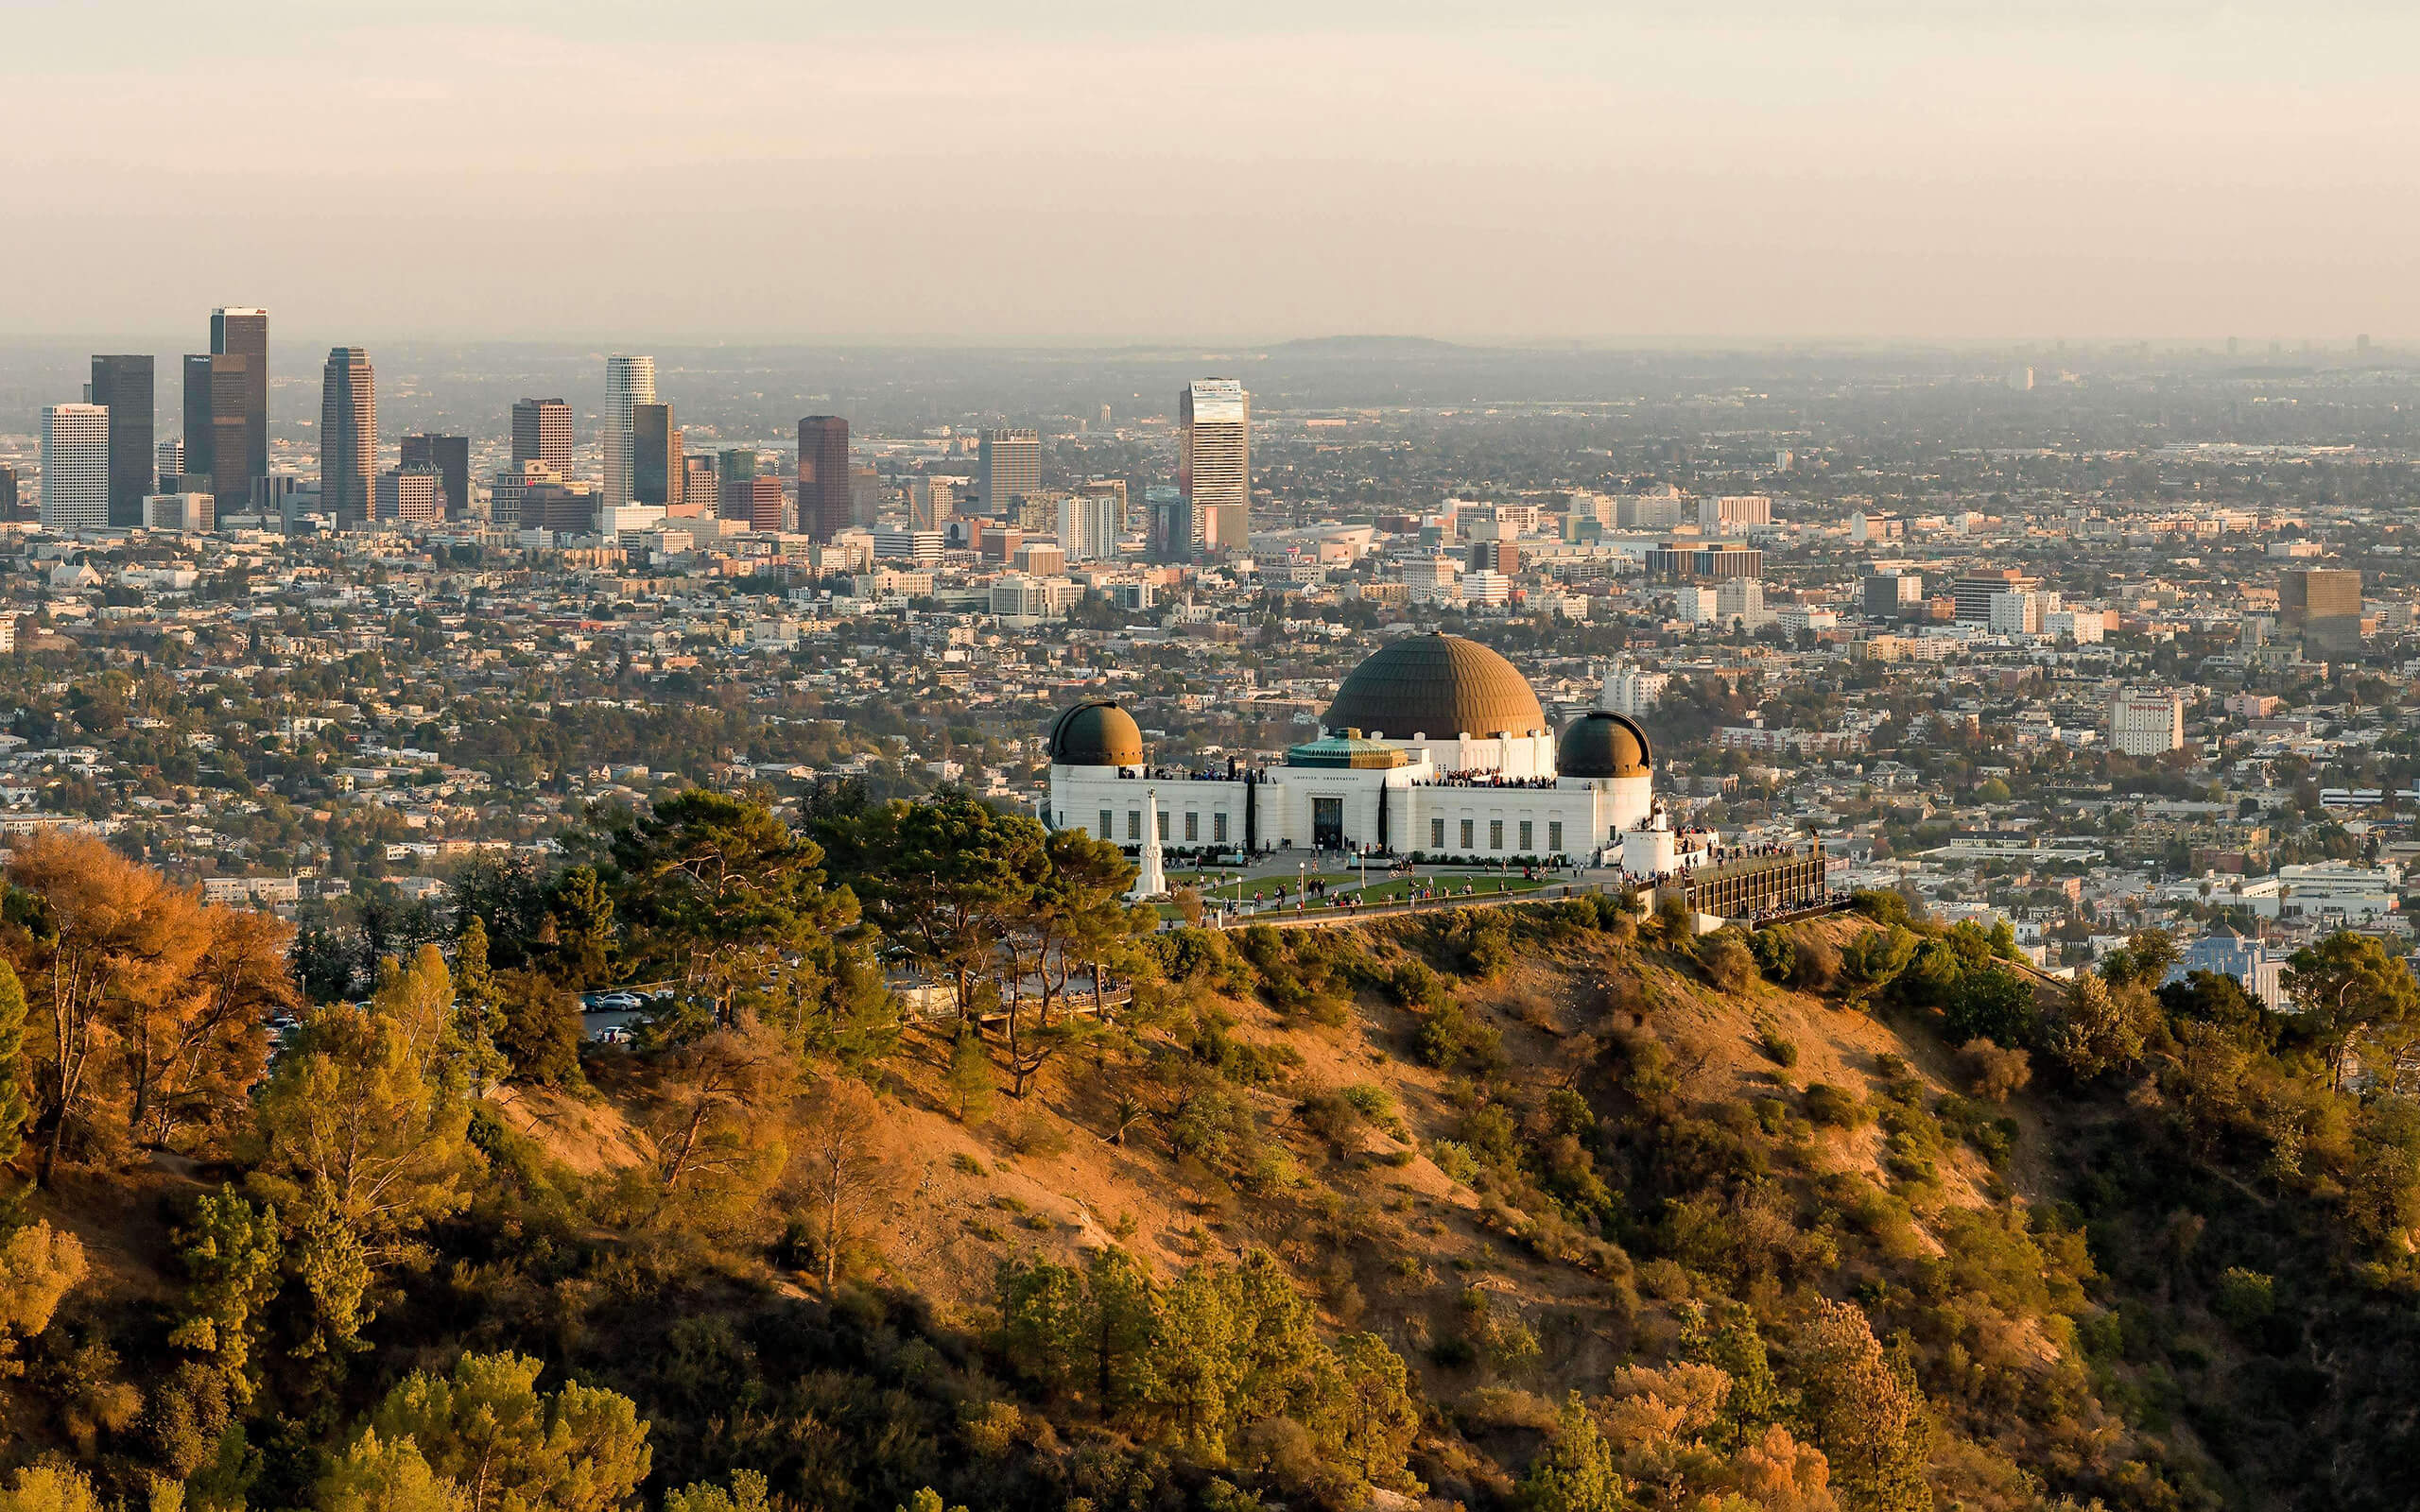 An aerial view of Los Angeles